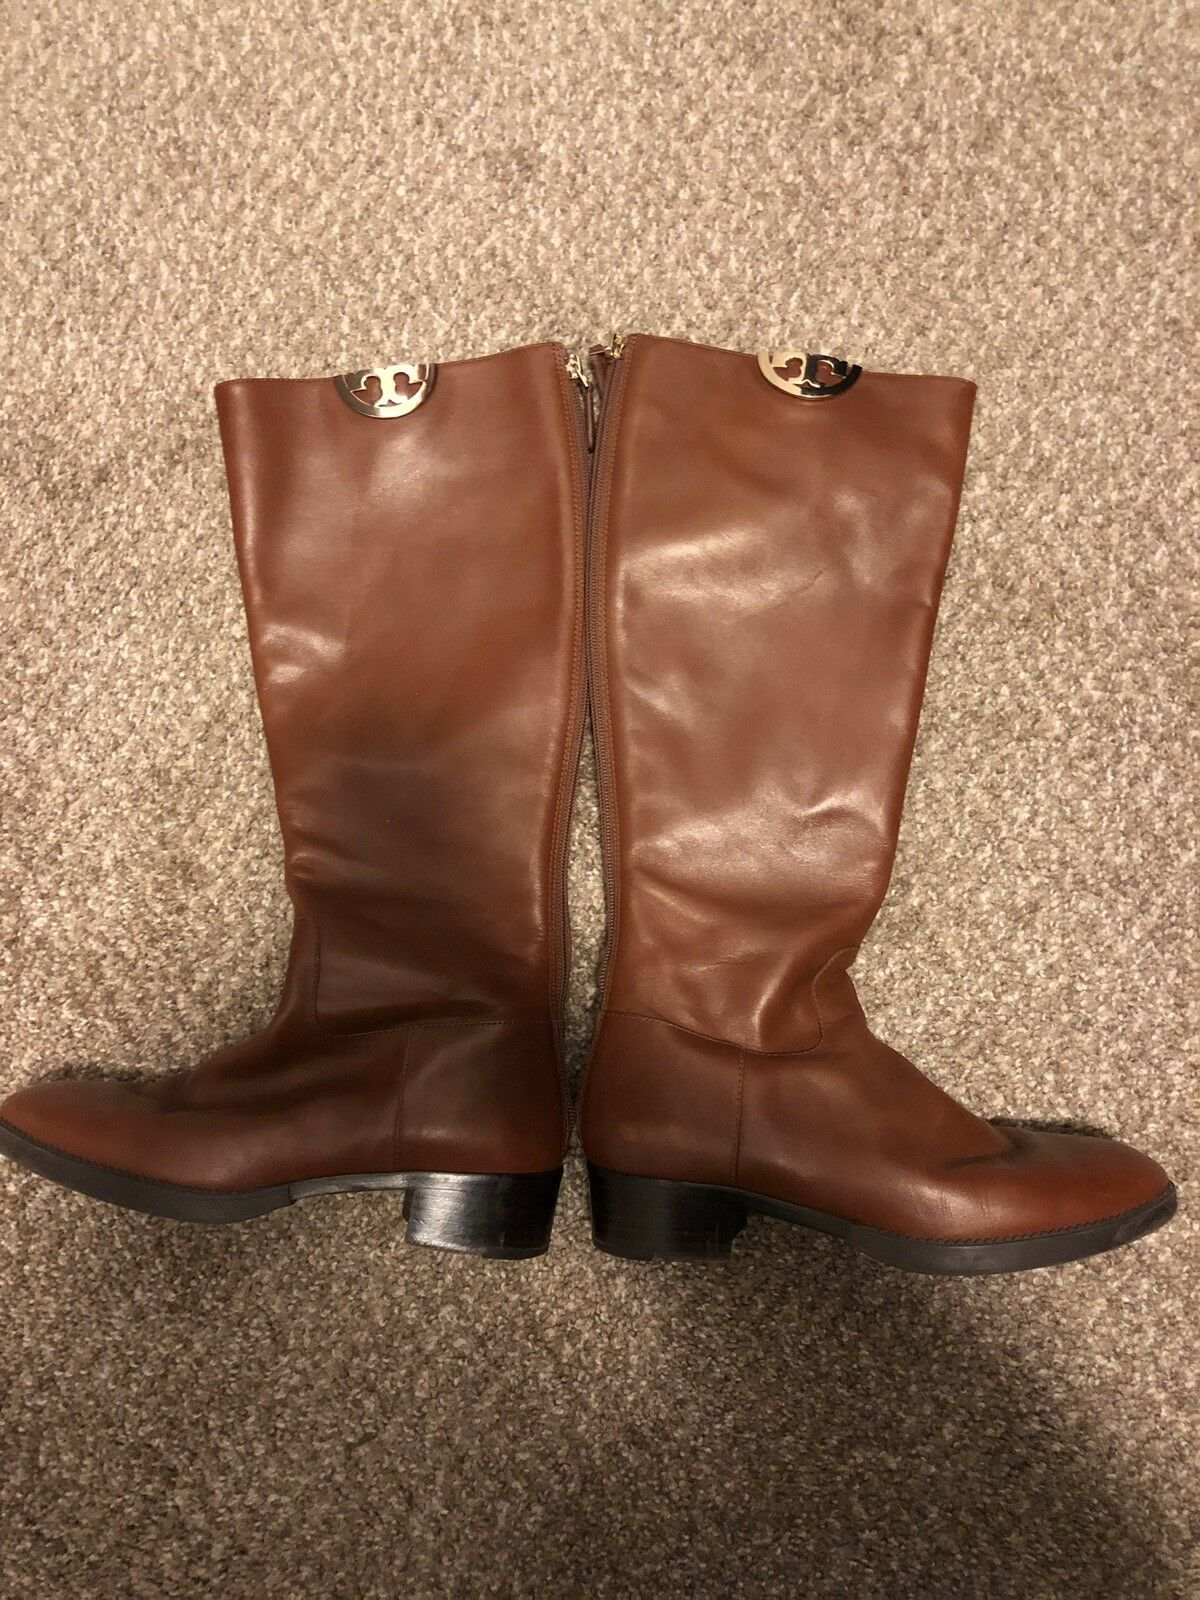 Tory burch riding boots boots boots 7 60246e